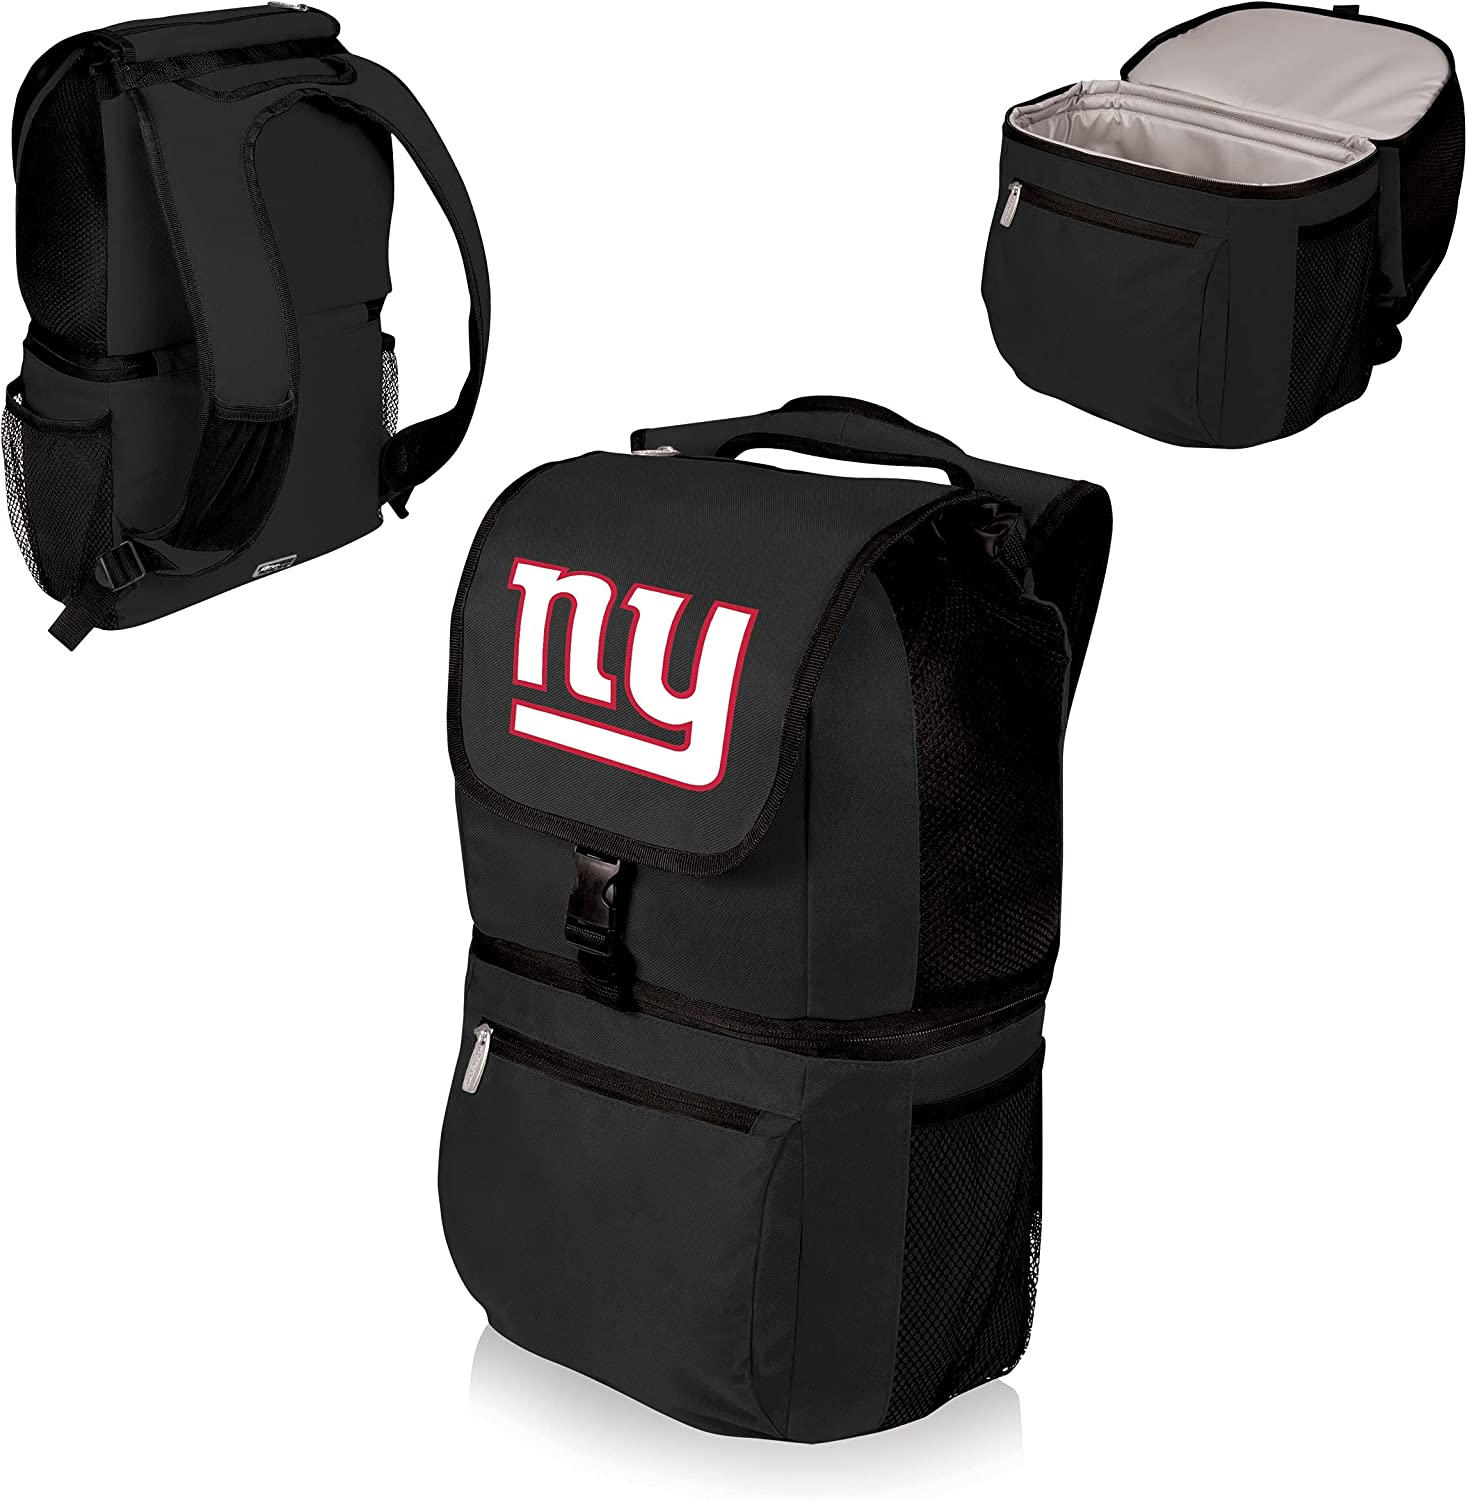 PICNIC TIME NFL Popular product New sold out York Zuma Backpack Cooler Insulated Giants